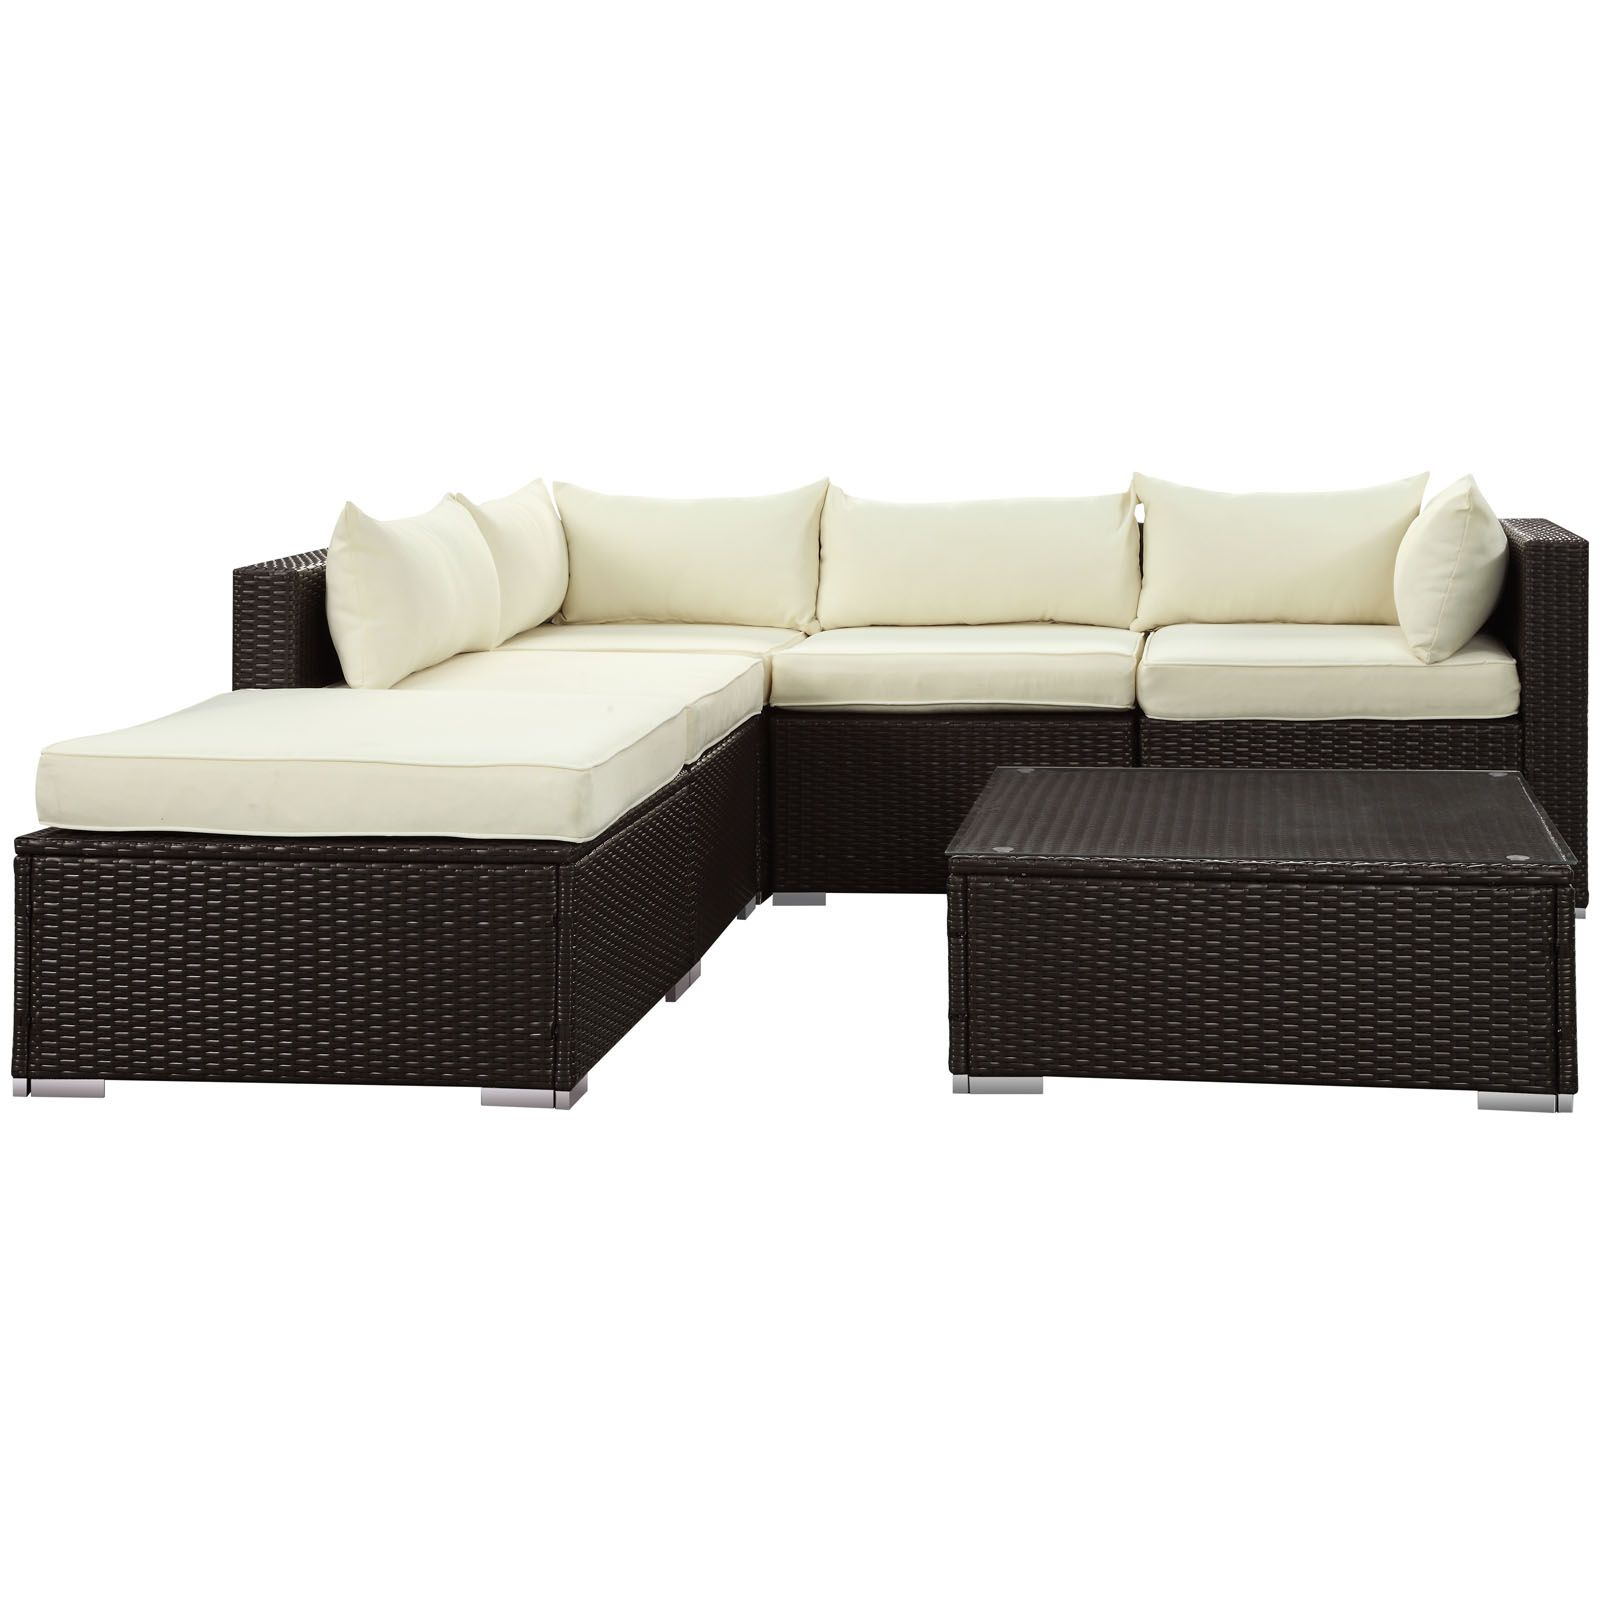 lexmod monterey outdoor wicker rattan sectional sofa set white overstuffed hampton patio eei 975 exp whi by